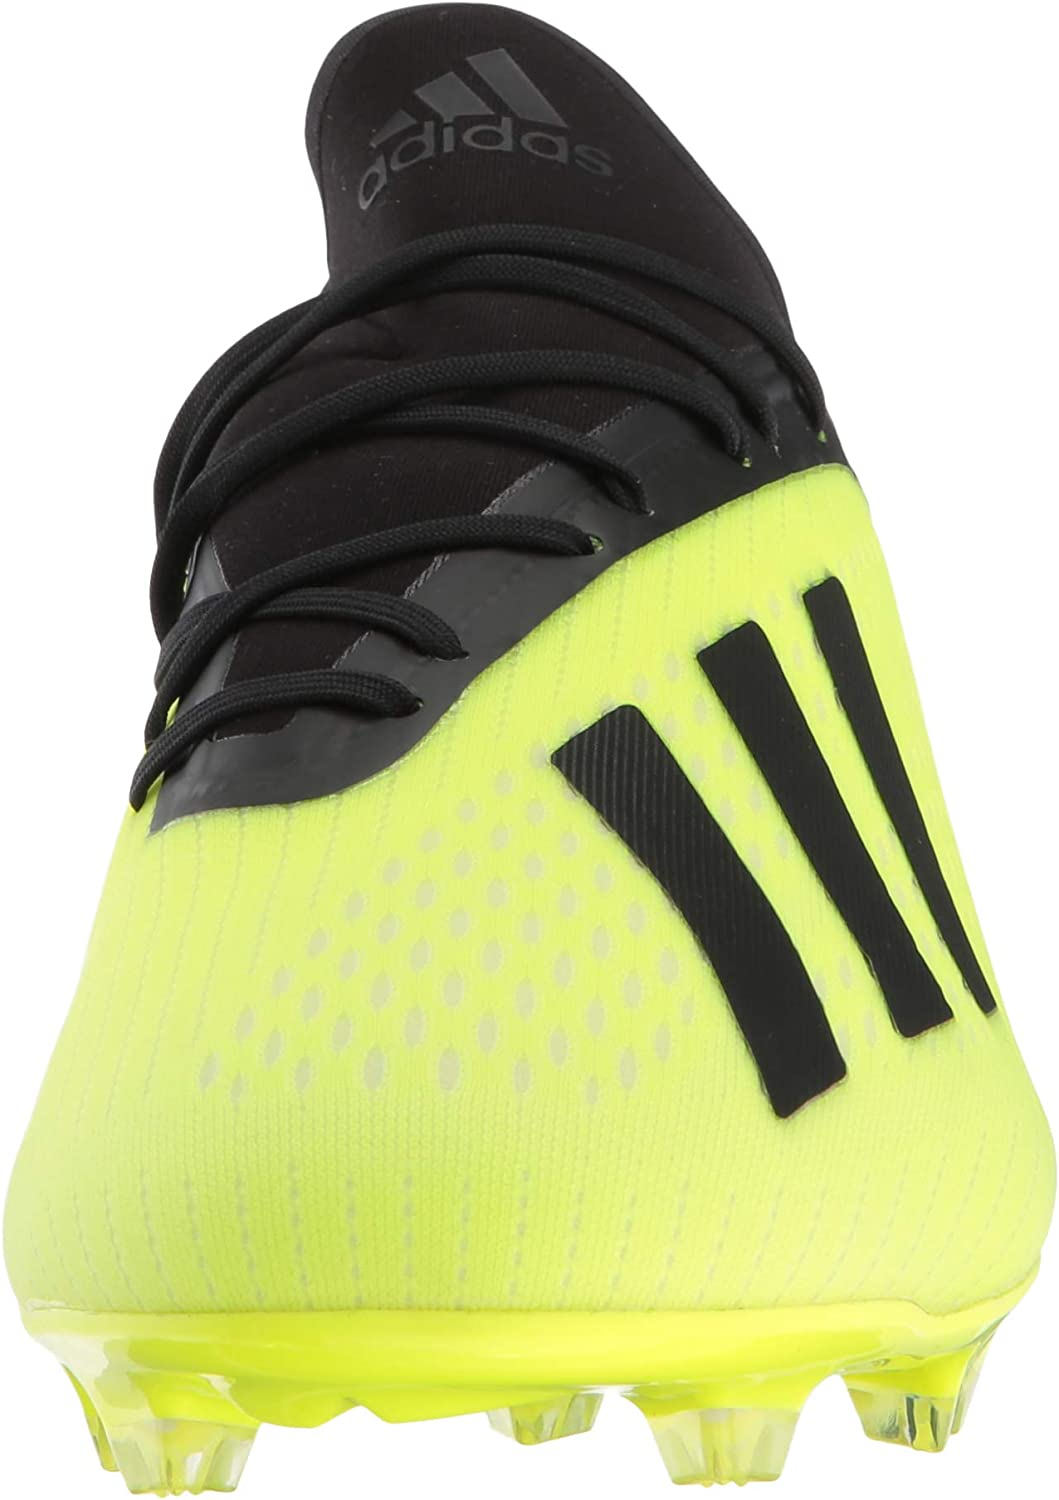 X 18.2 Firm Ground Soccer Shoe